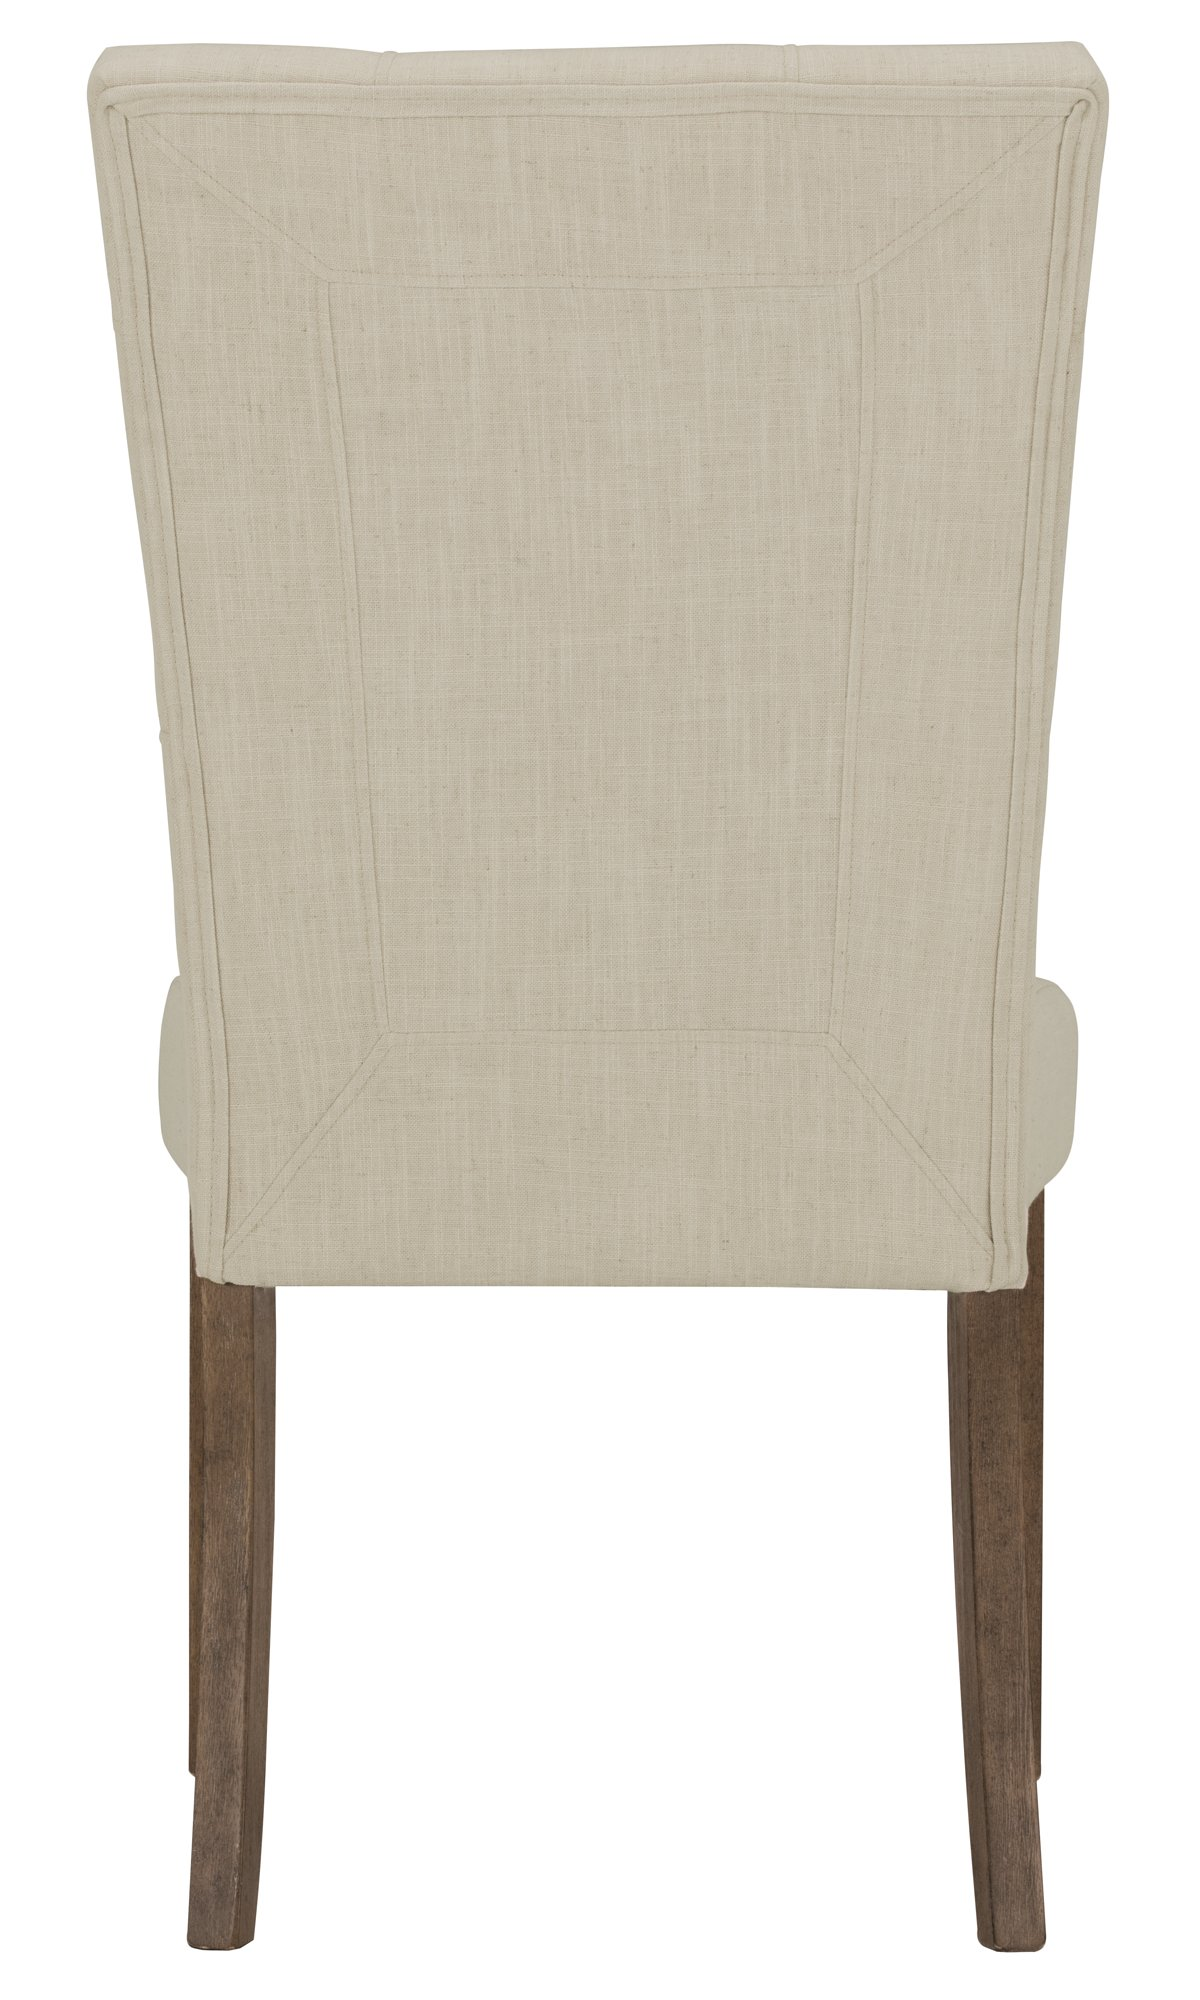 Emmett White Fabric Upholstered Side Chair